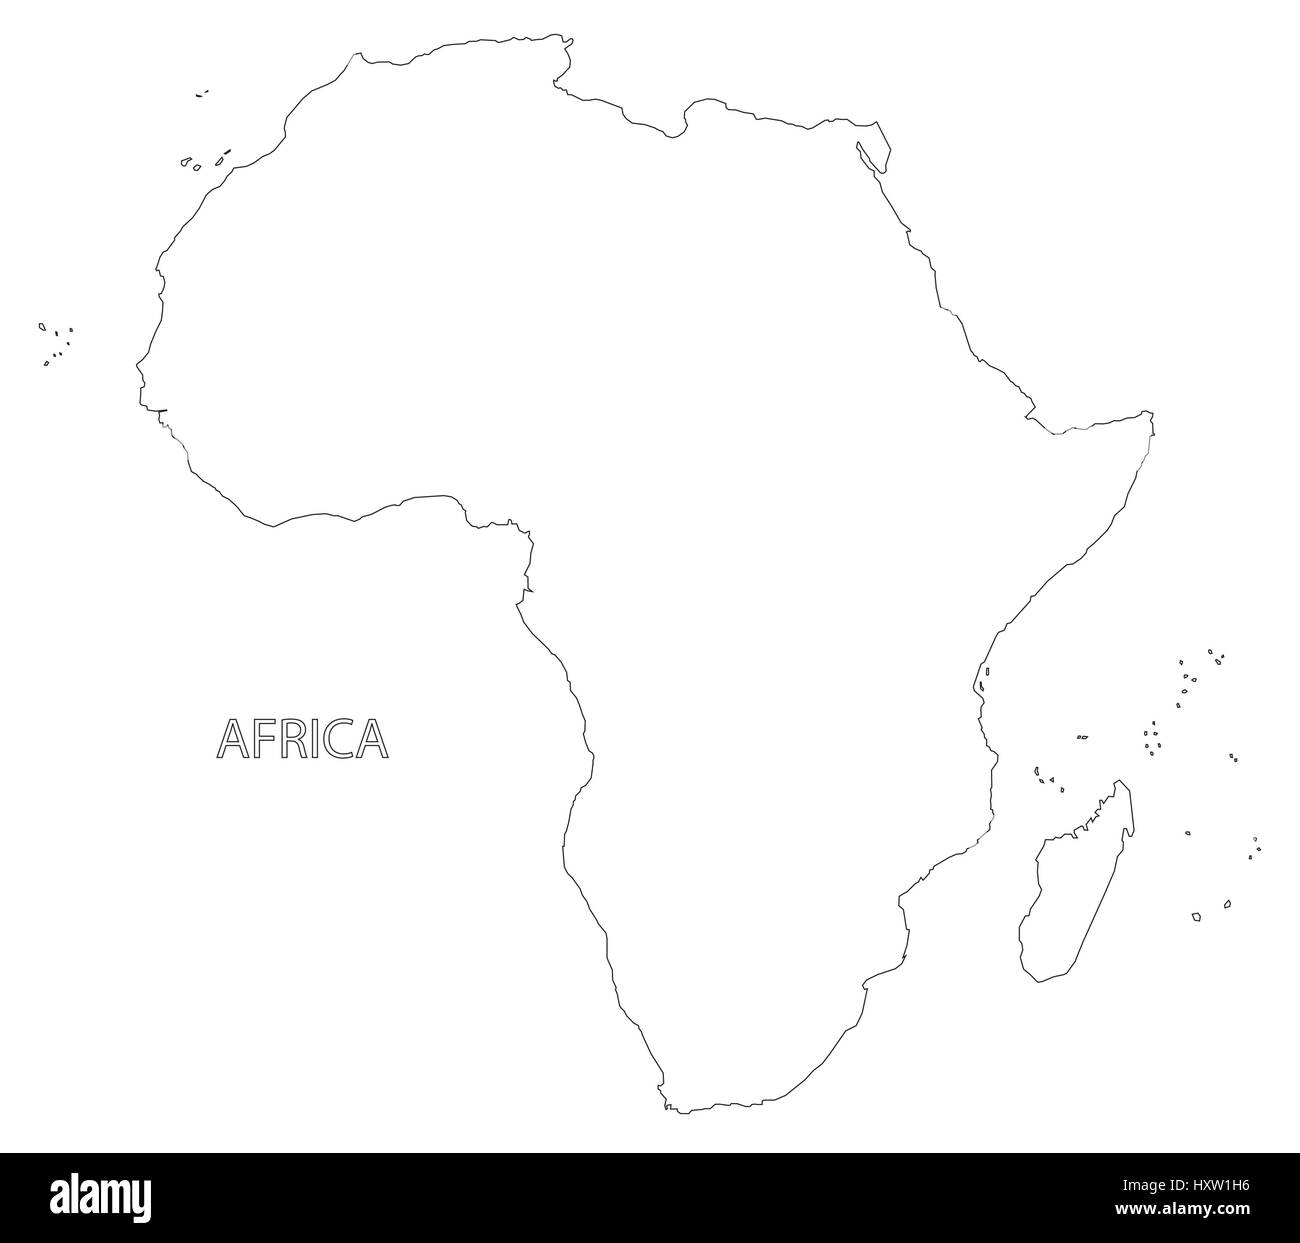 Africa Continent Outline Silhouette Map Illustration